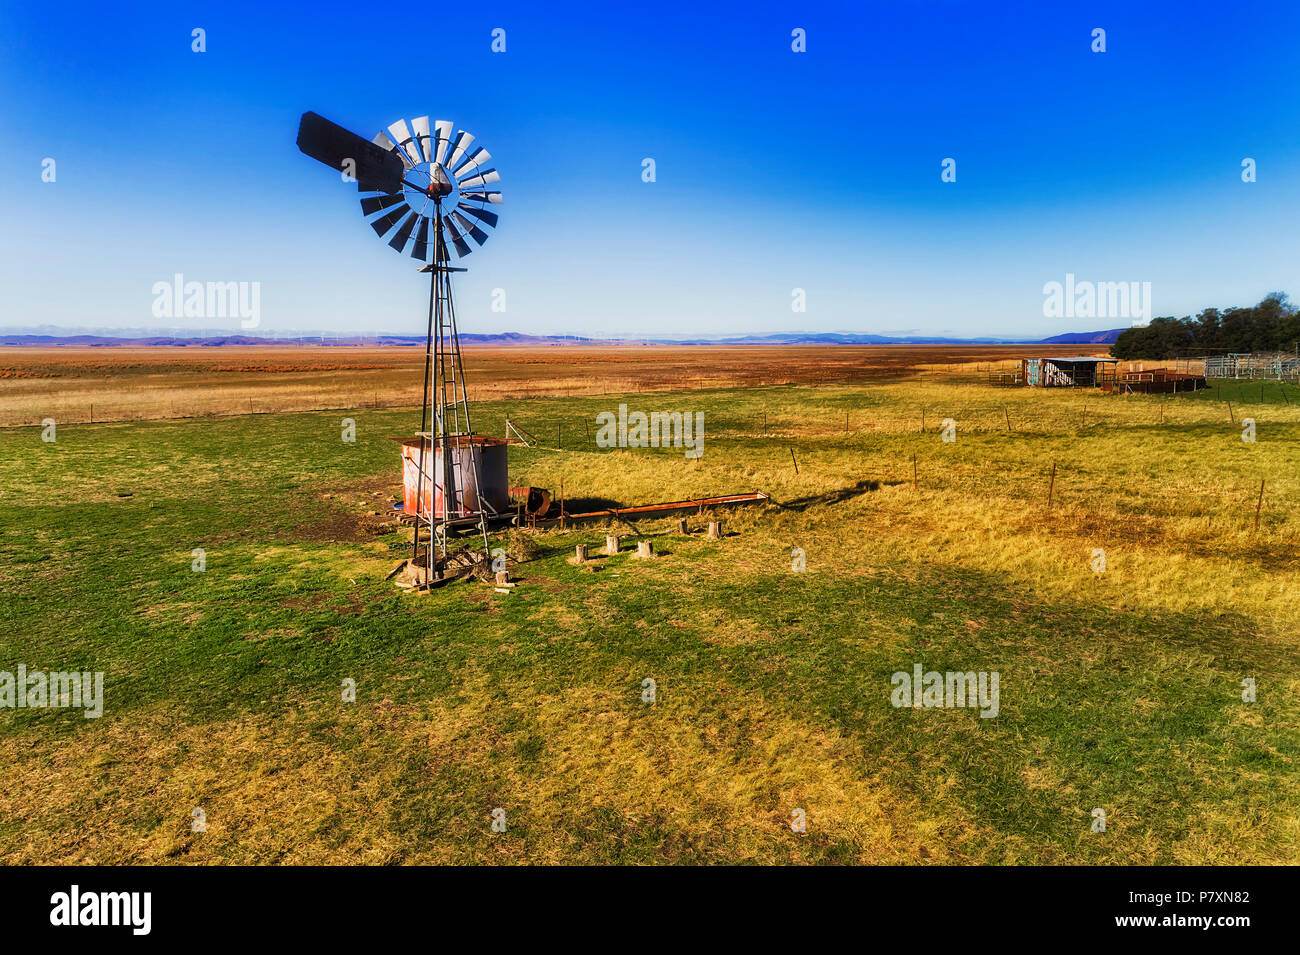 Single historic self winding wind mill pumping water in remote cattle farm on dry plain of Lake George country in regional NSW outback on a sunny day  - Stock Image